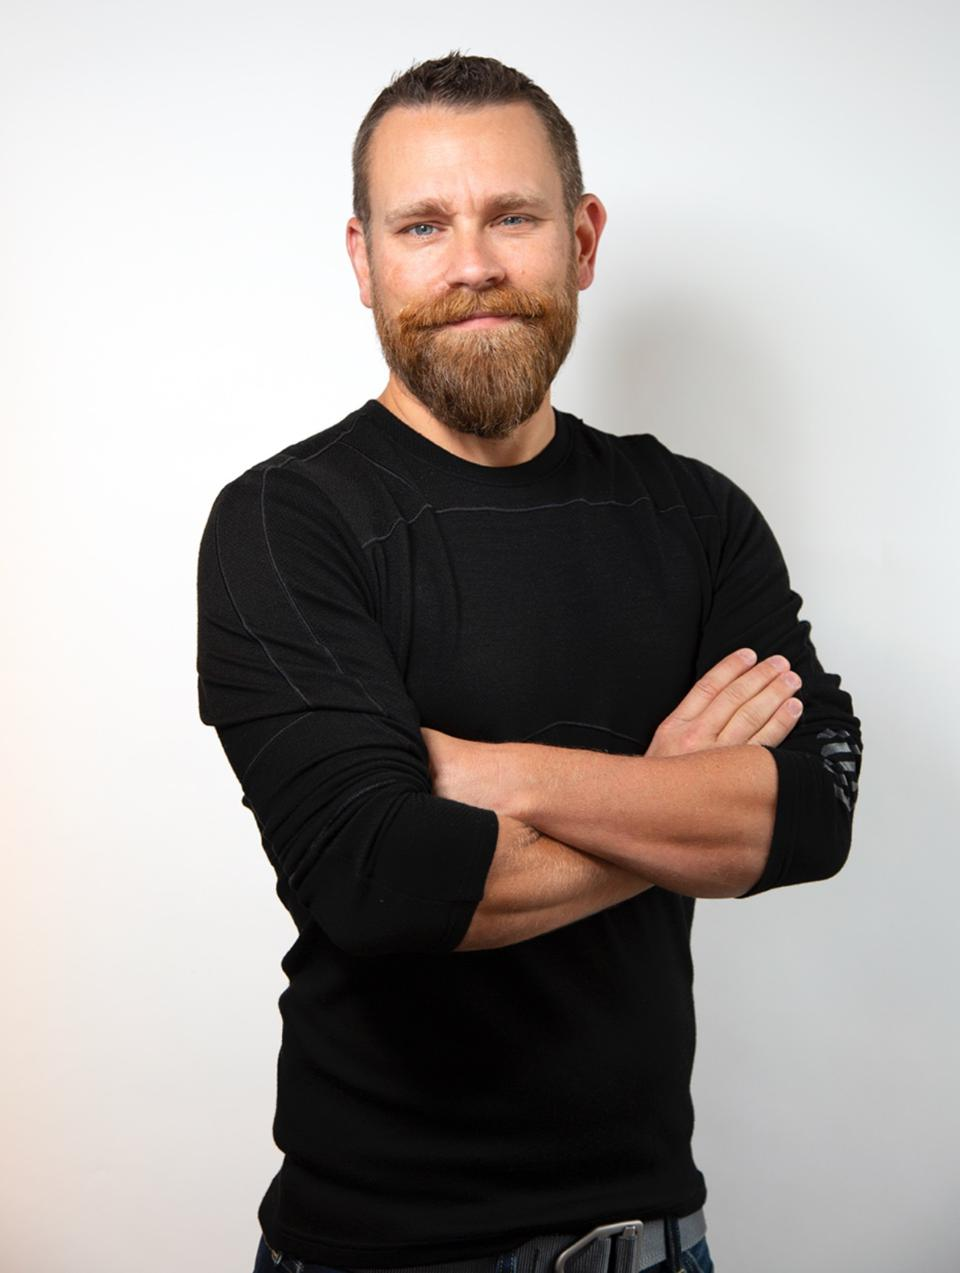 Headshot of Kristian Andersen in a black shirt in front of white wall.